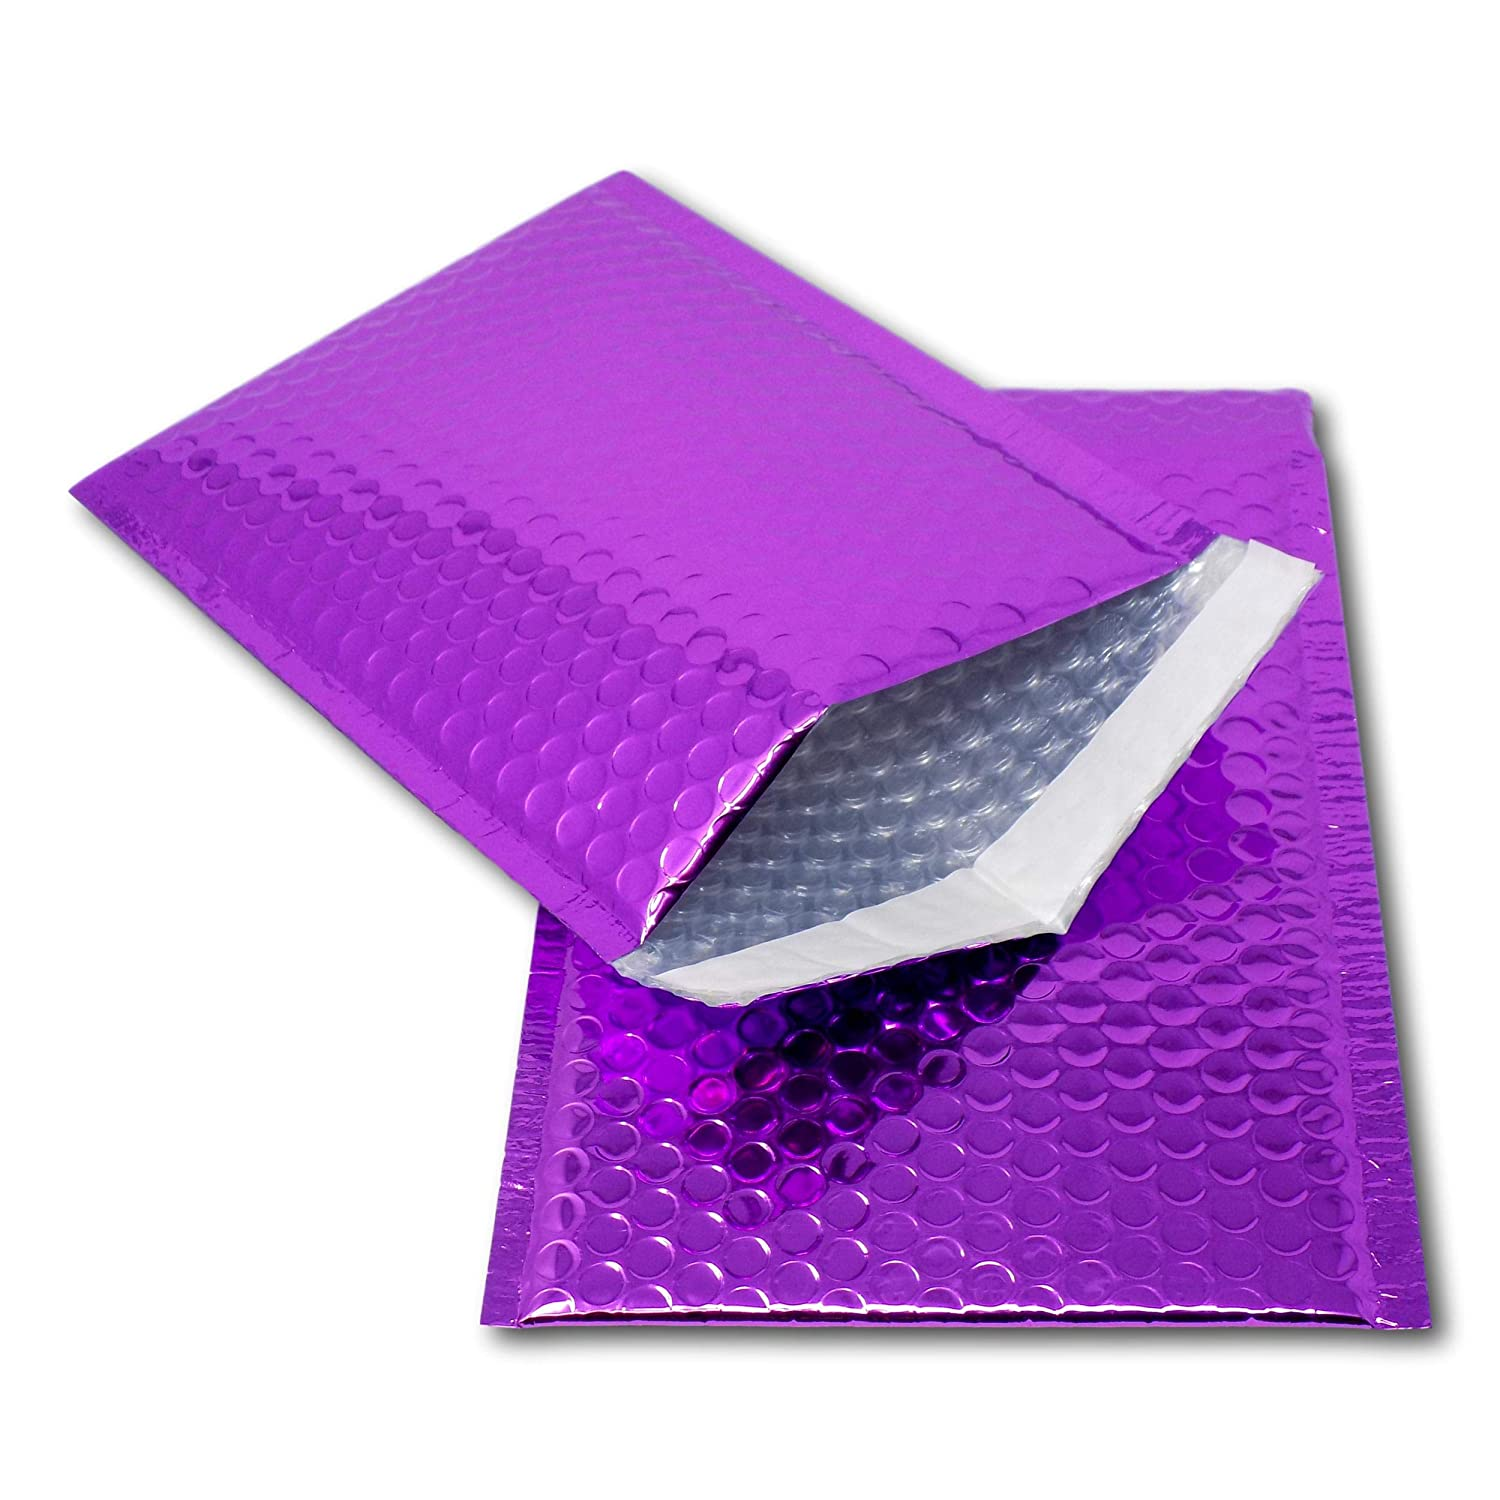 promotions or and alternative to gift wrap Perfect for marketing A3 // C3-450mm x 320mm EPOSGEAR 10 Purple Shiny Metallic Foil Bubble Padded Bag Mailing Envelopes